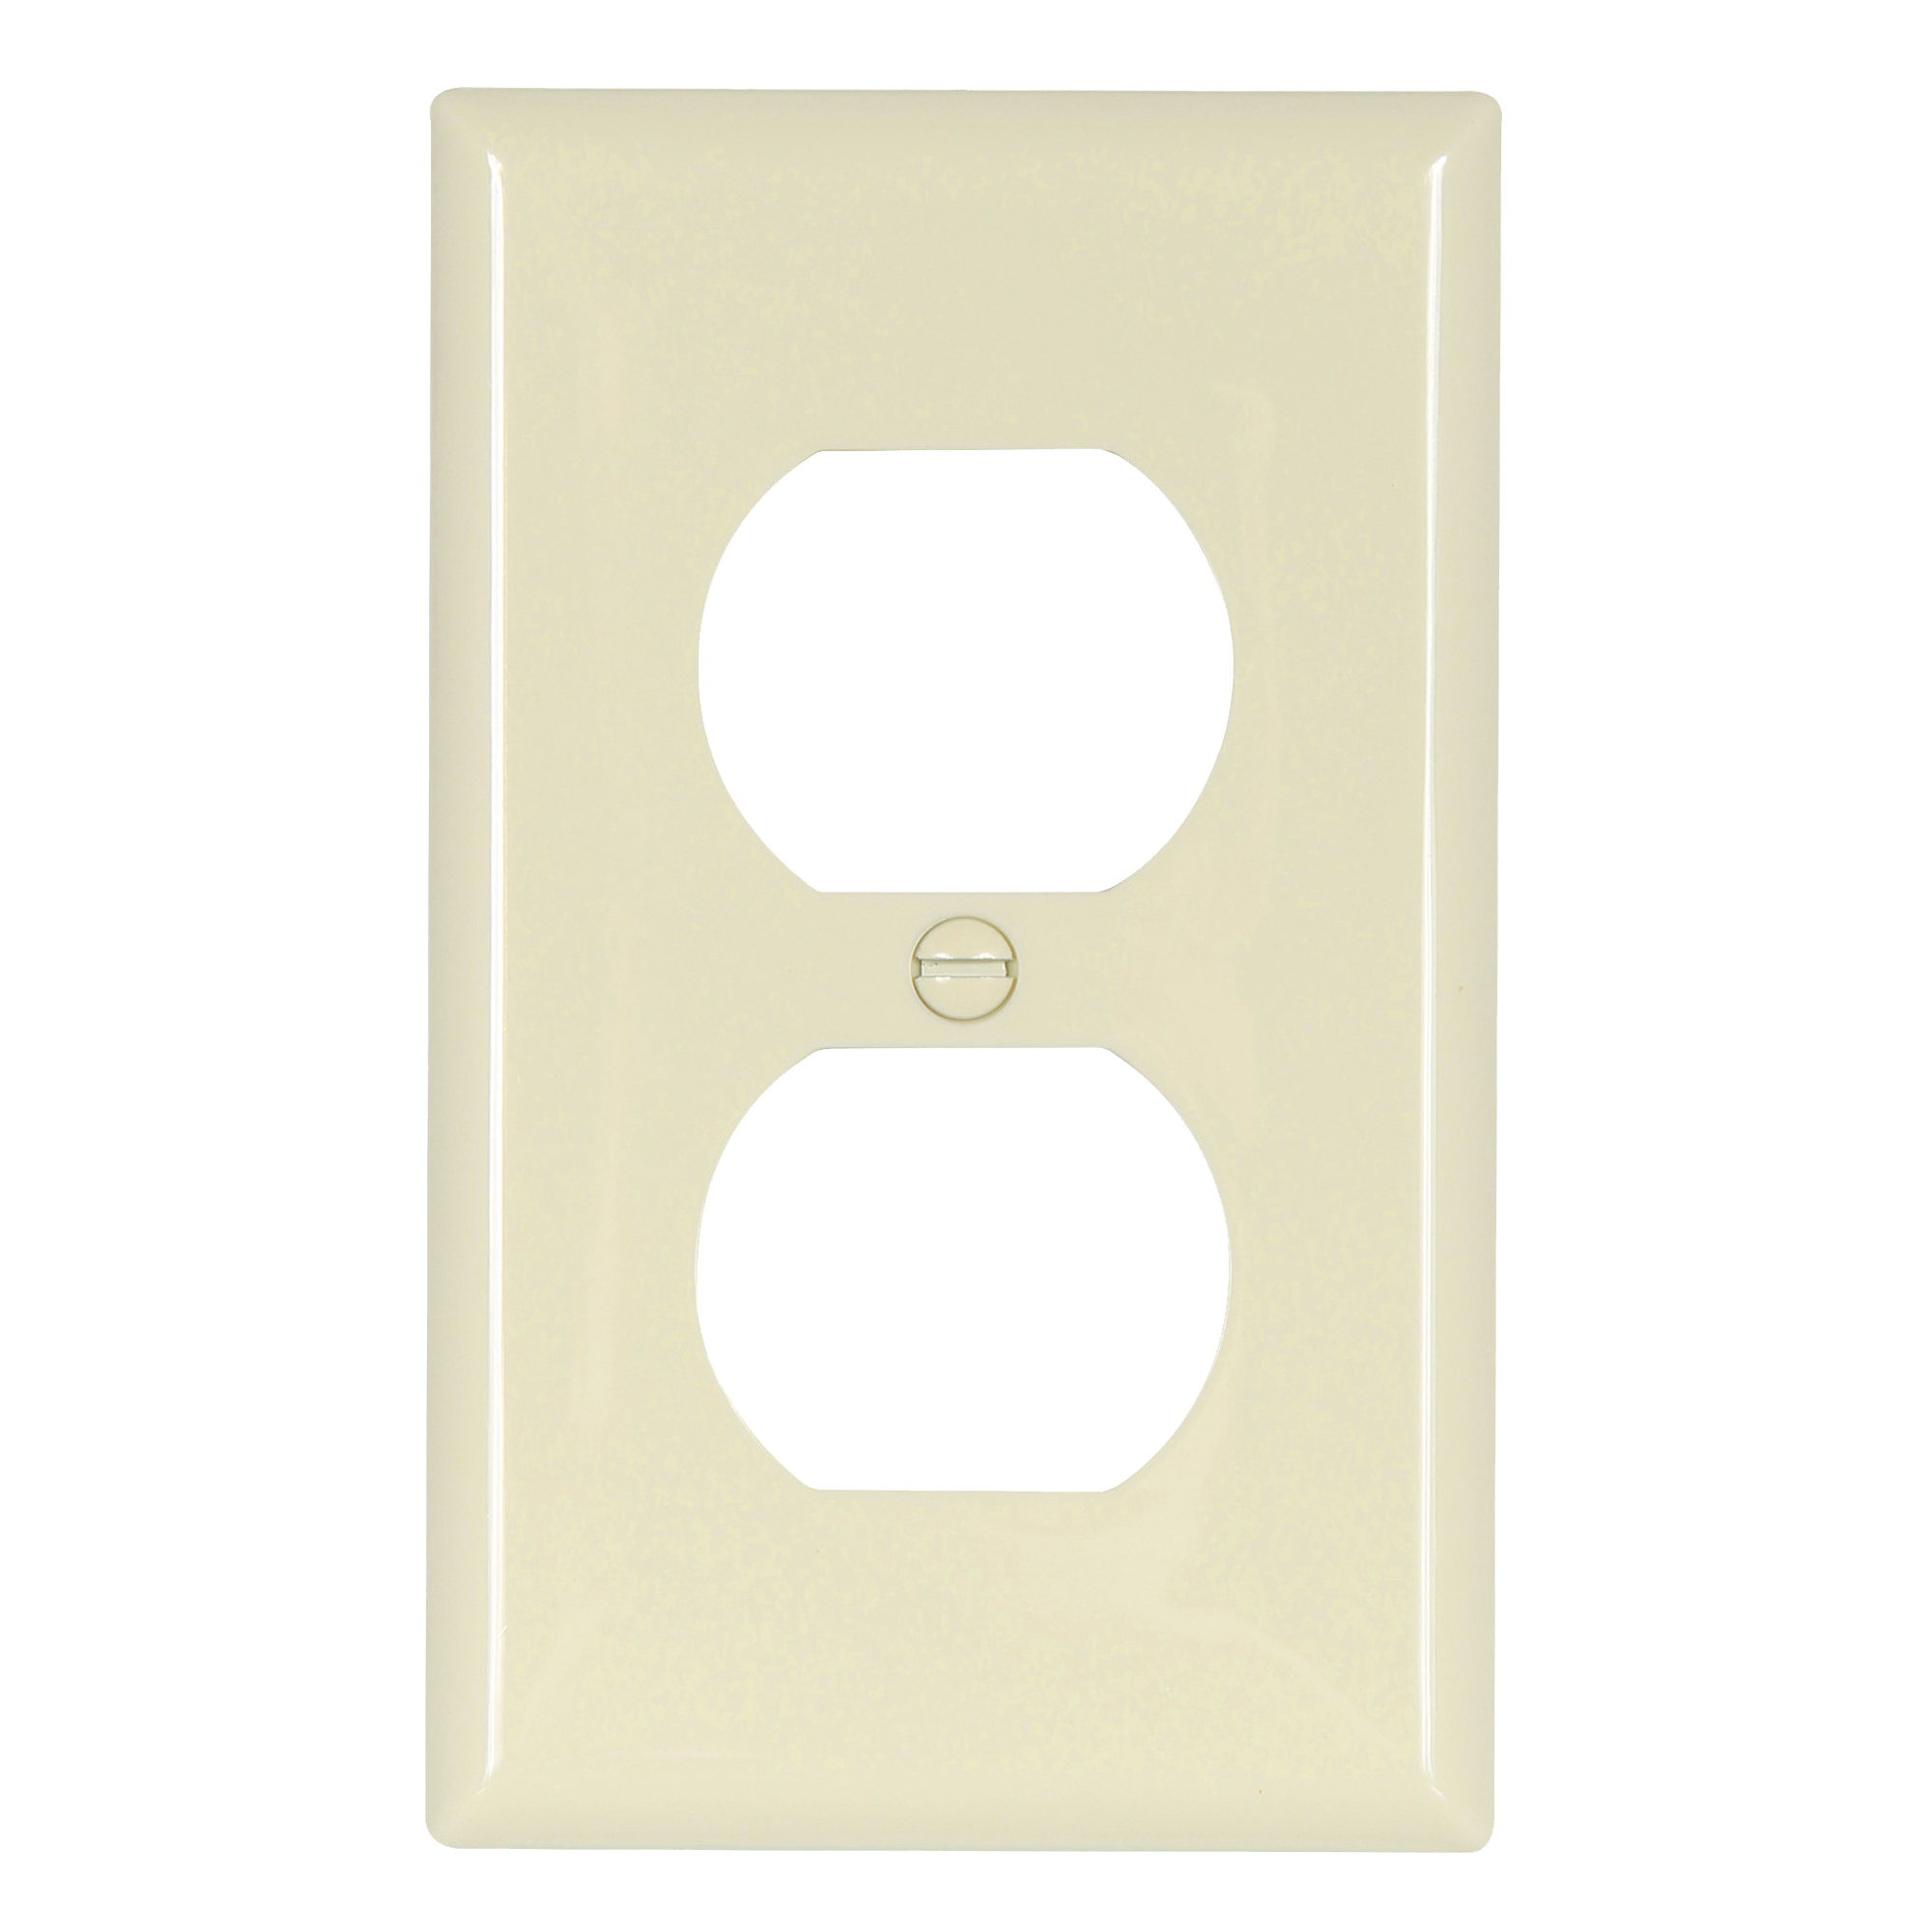 Picture of Eaton Wiring Devices 5132LA Duplex Receptacle Wallplate, 4-1/2 in L, 2-3/4 in W, 1-Gang, Nylon, Light Almond